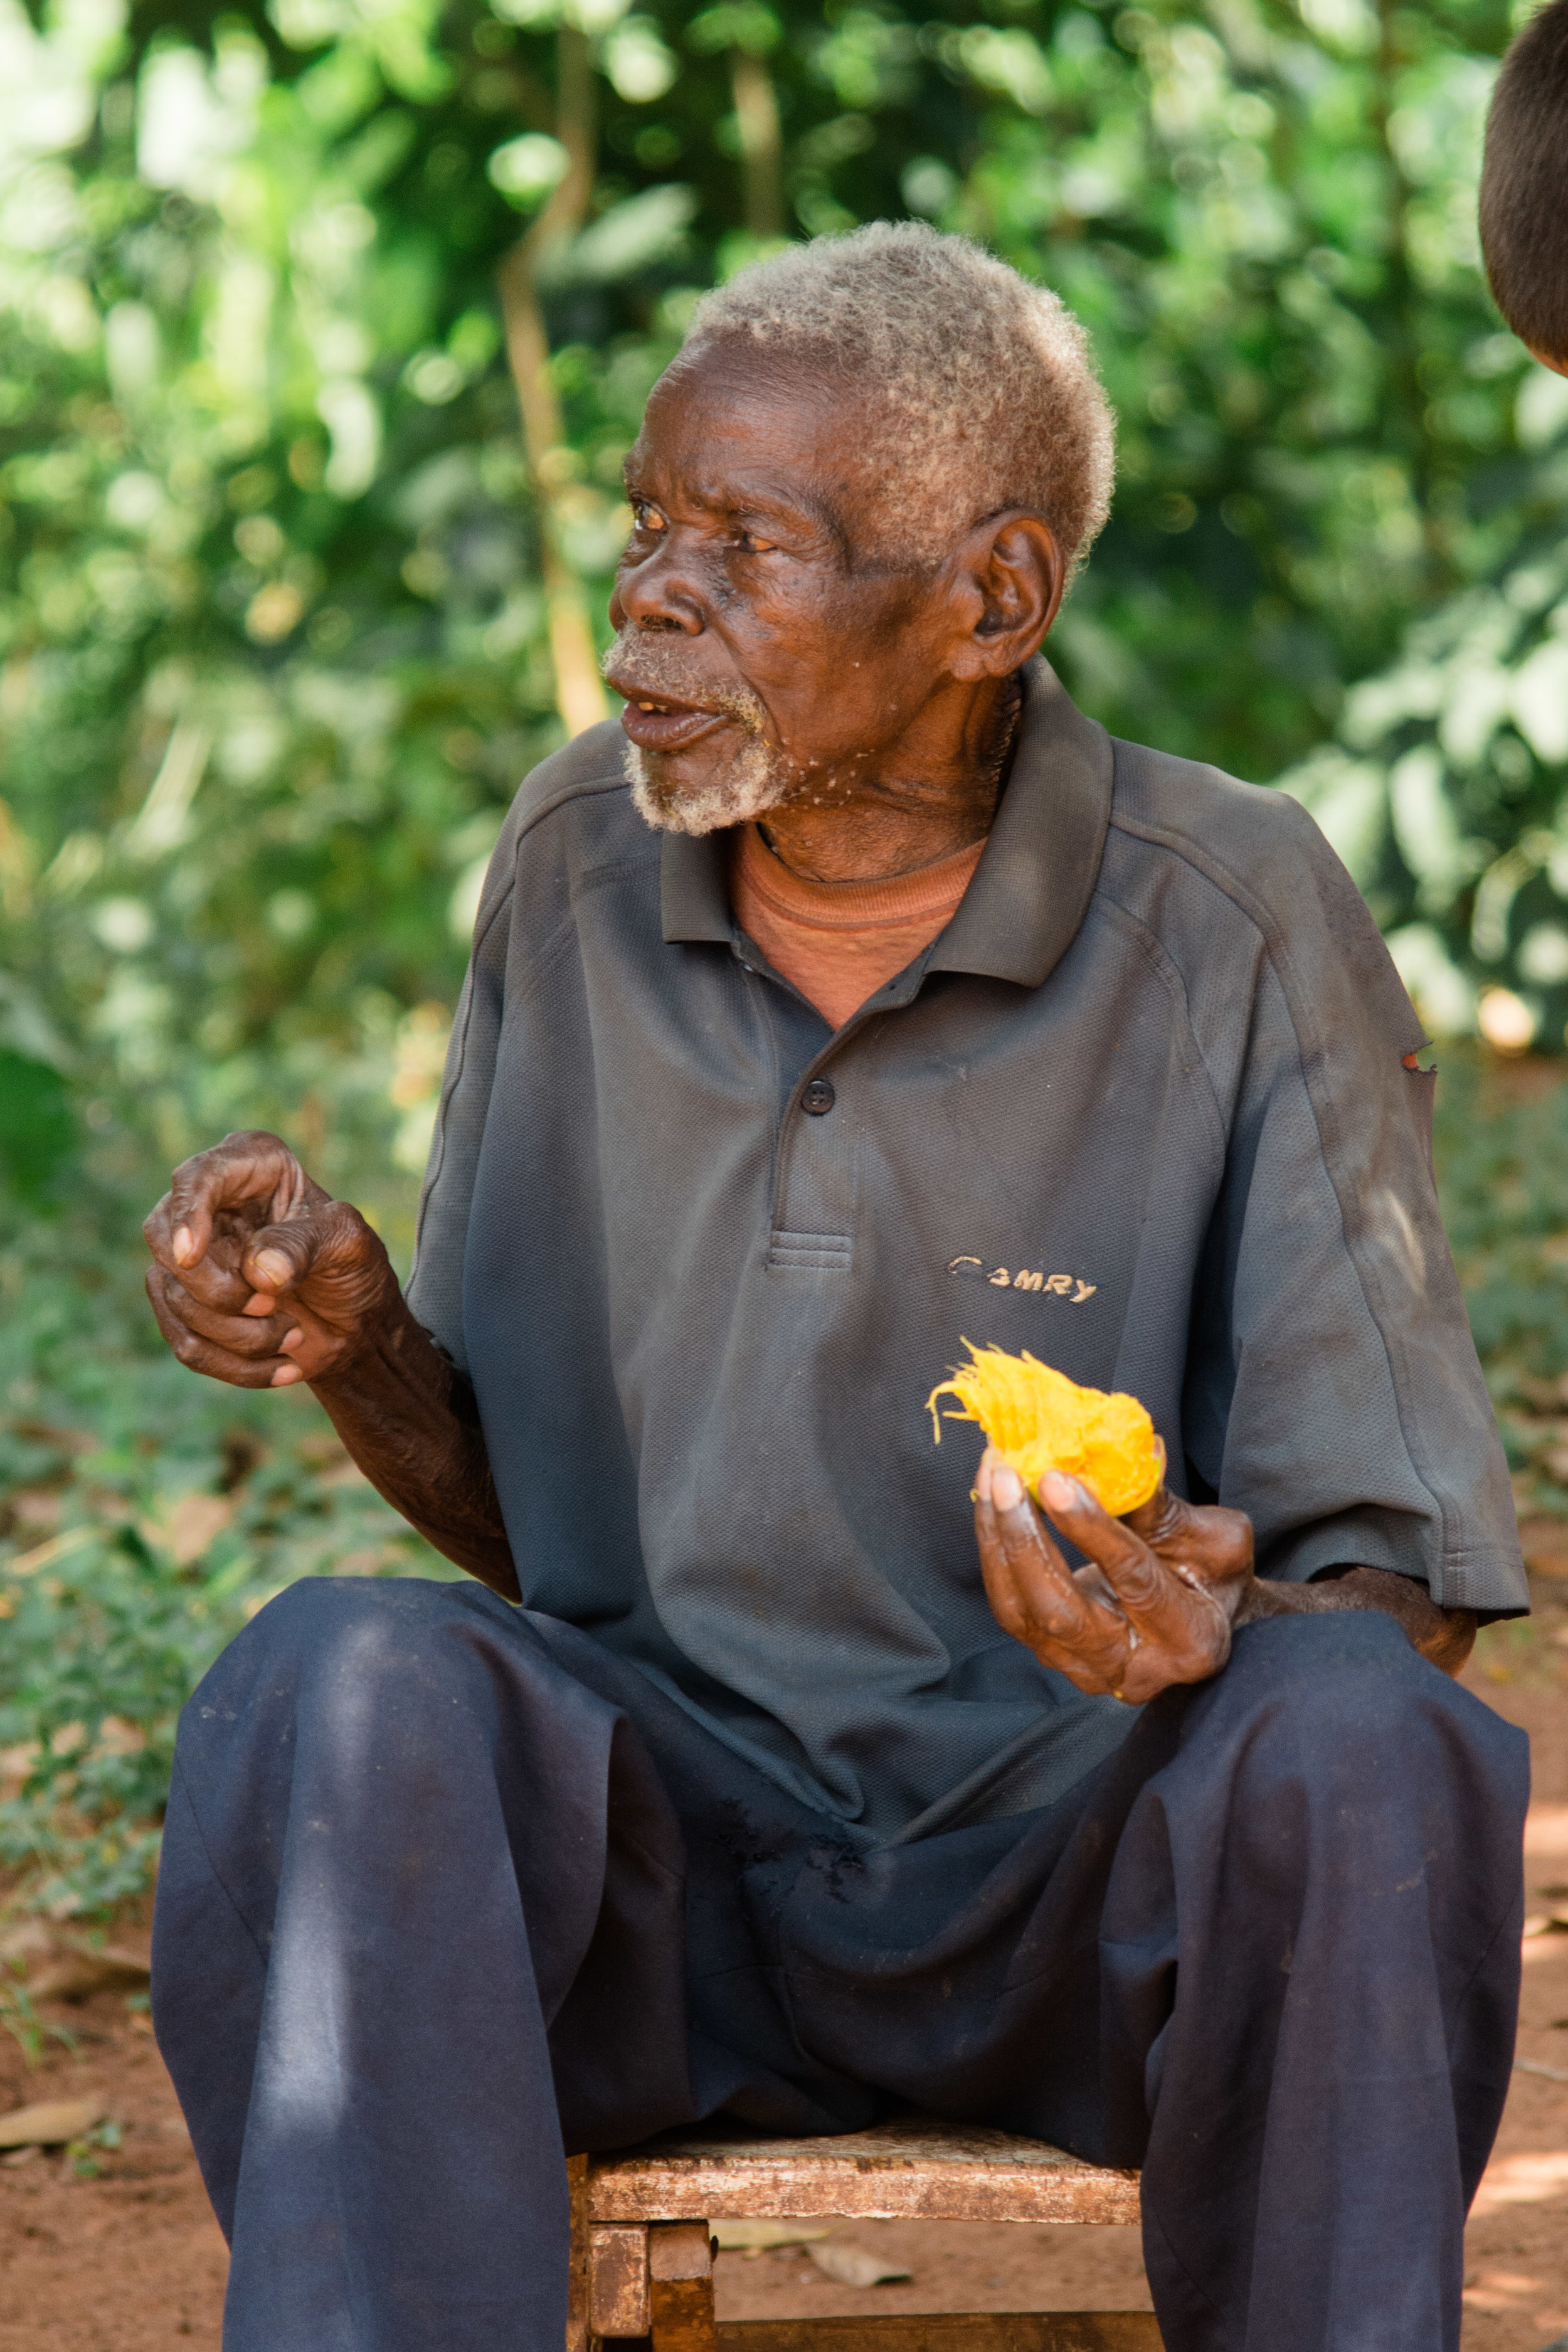 Eating a mango on a hot afternoon